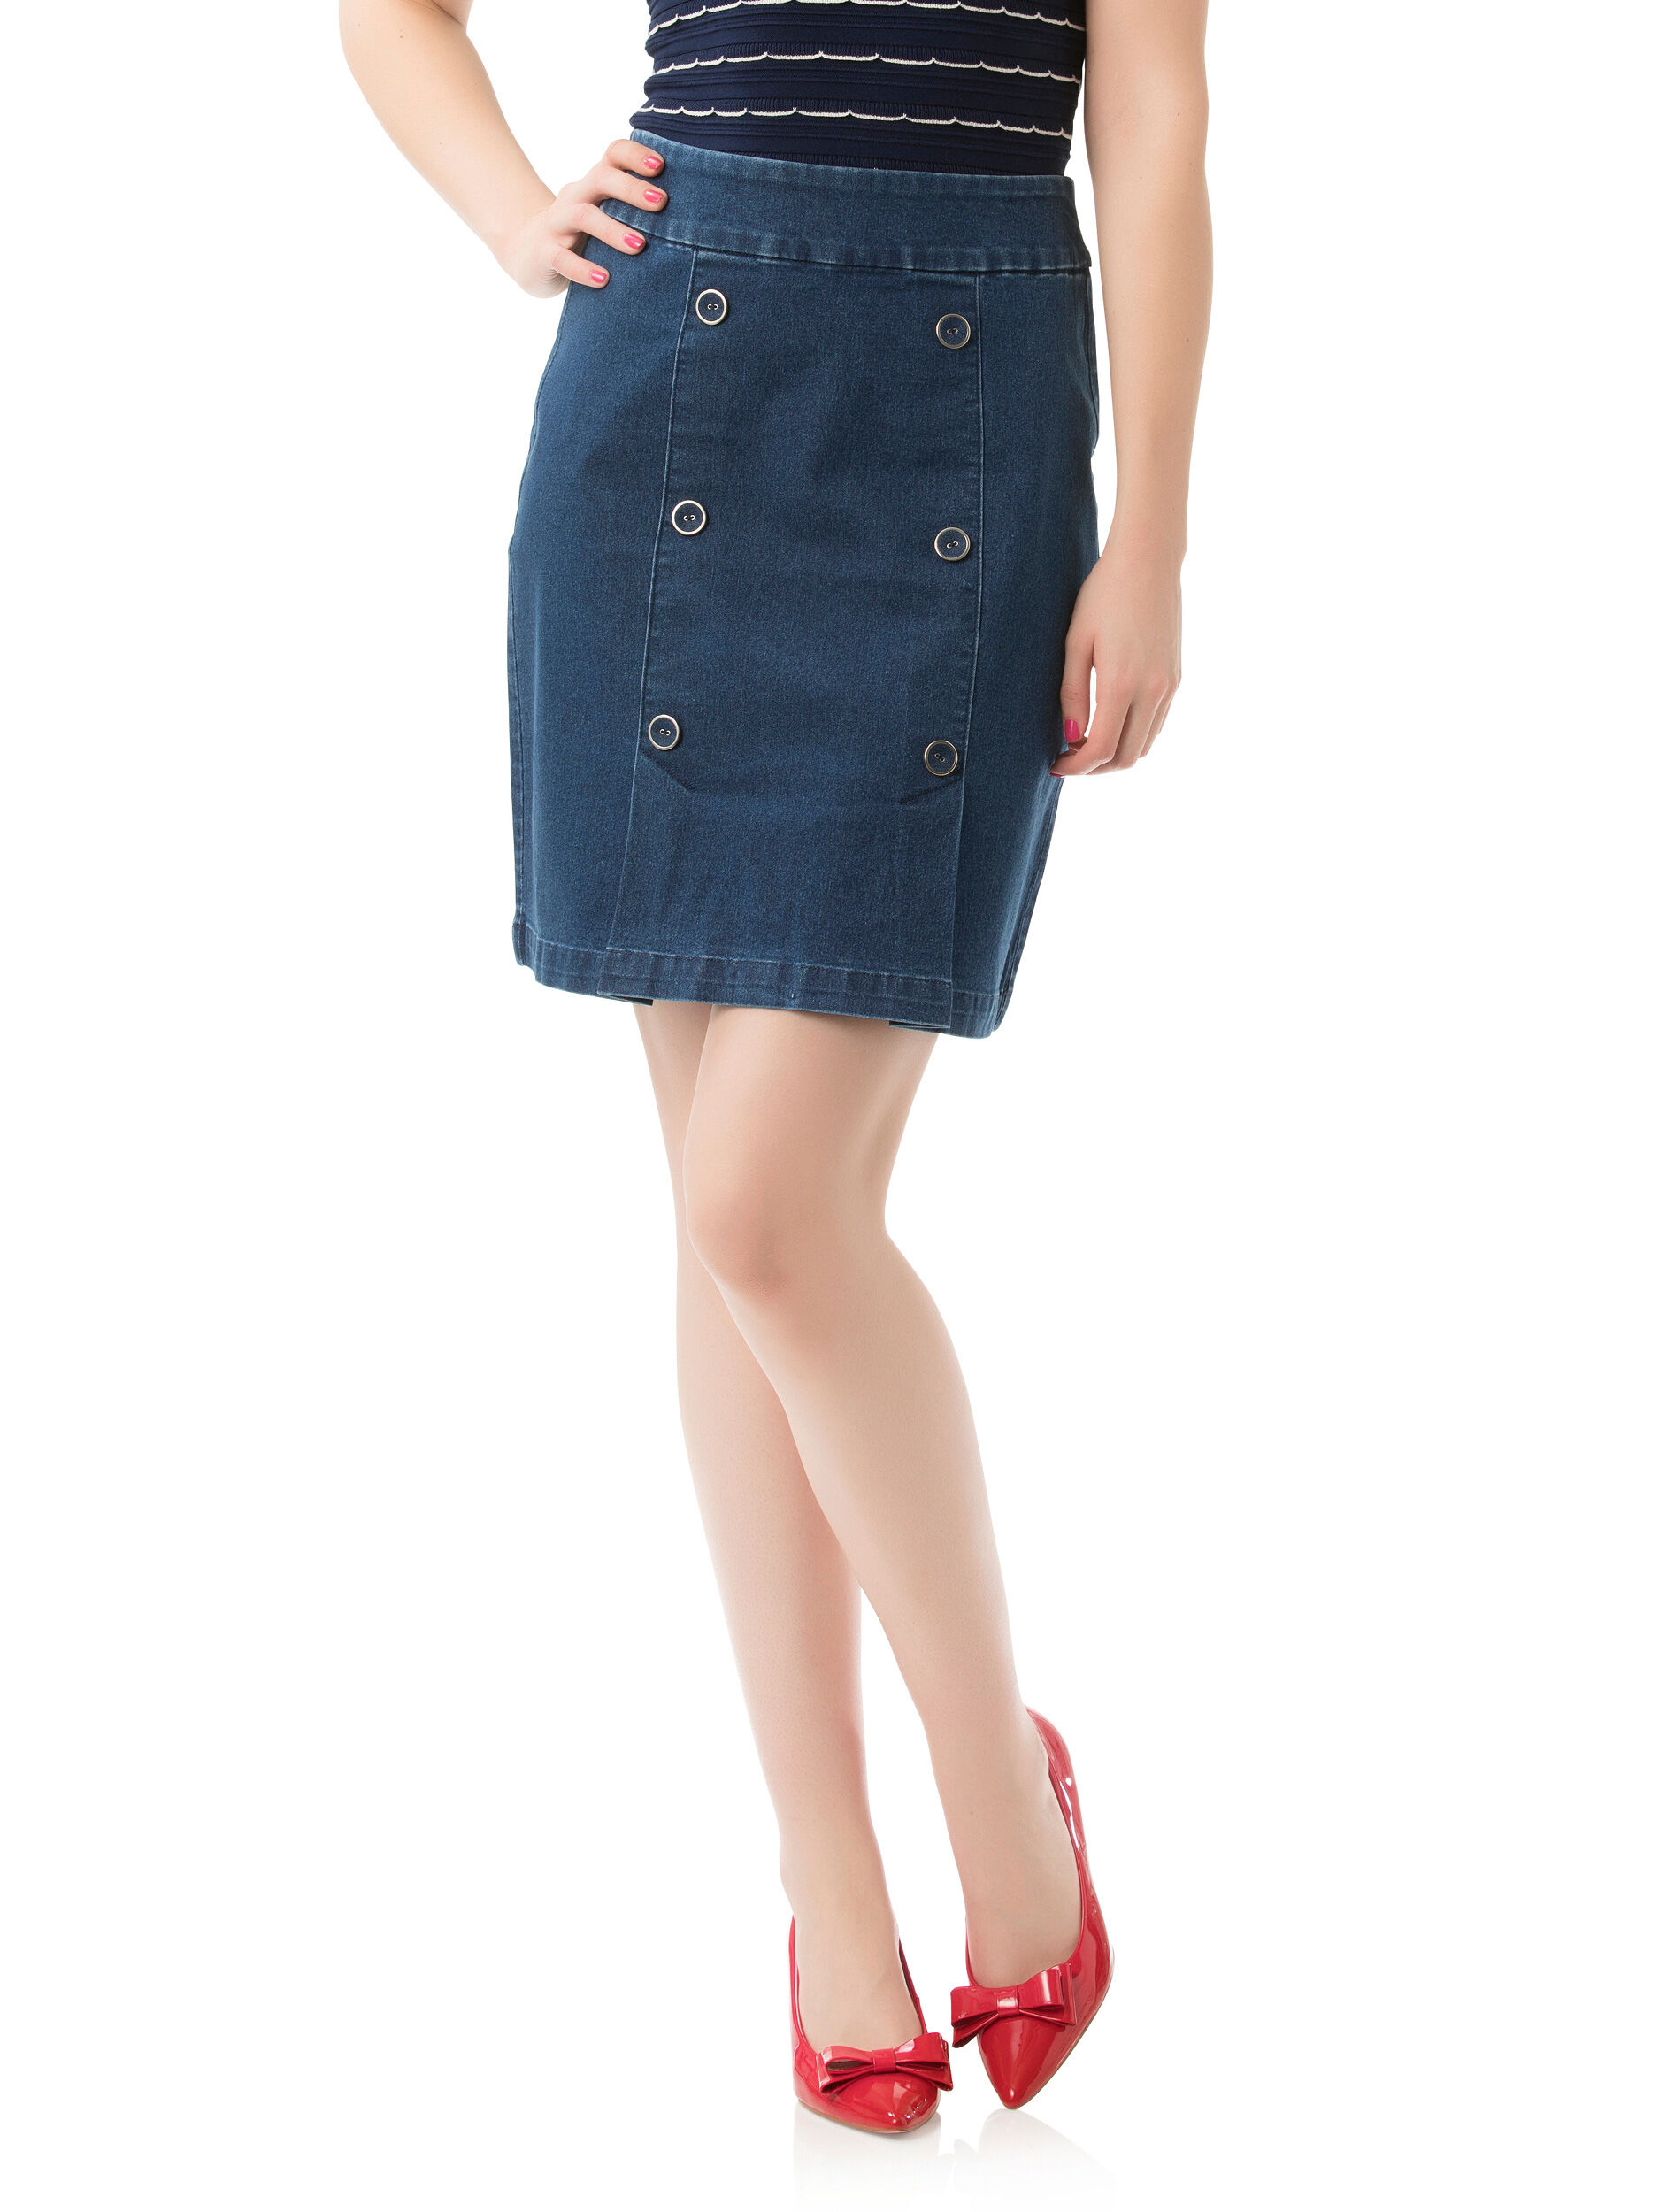 Rylie Denim Skirt